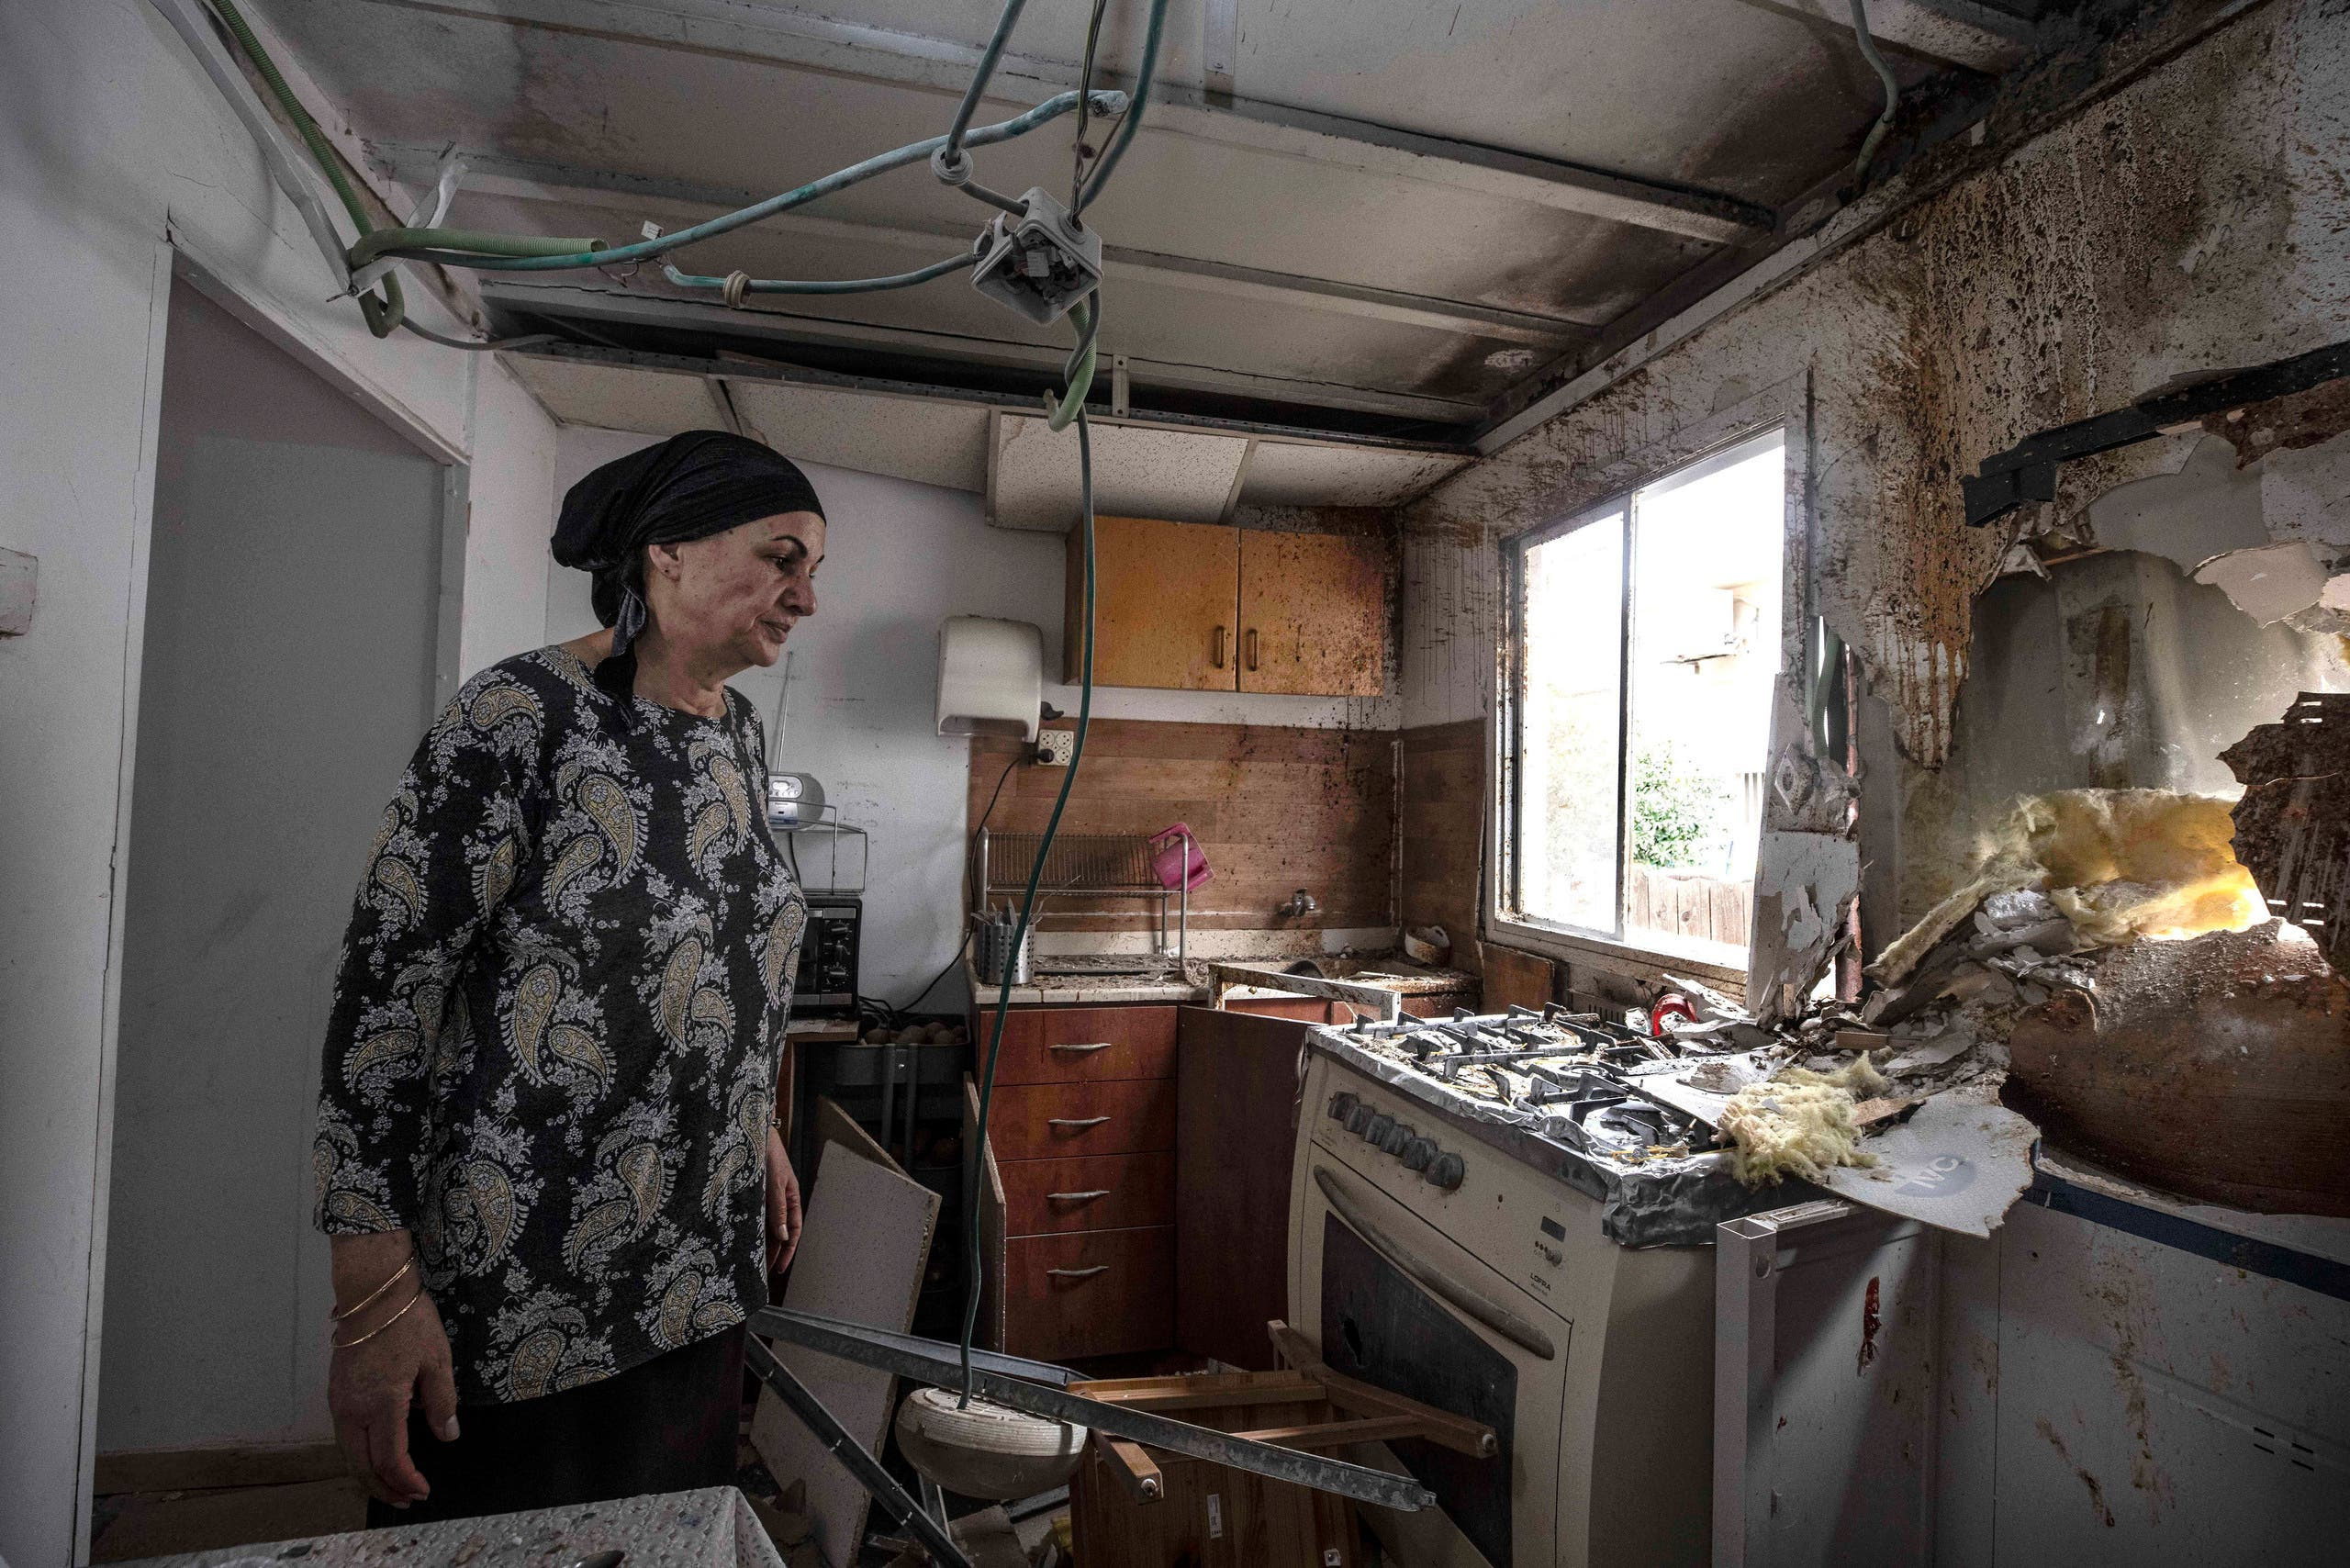 Homeowner Osnat Malka inspects damage from a rocket fired overnight by Palestinian militants from the Gaza Strip, in Sderot, Israel, Friday, Aug. 21, 2020. (AP)